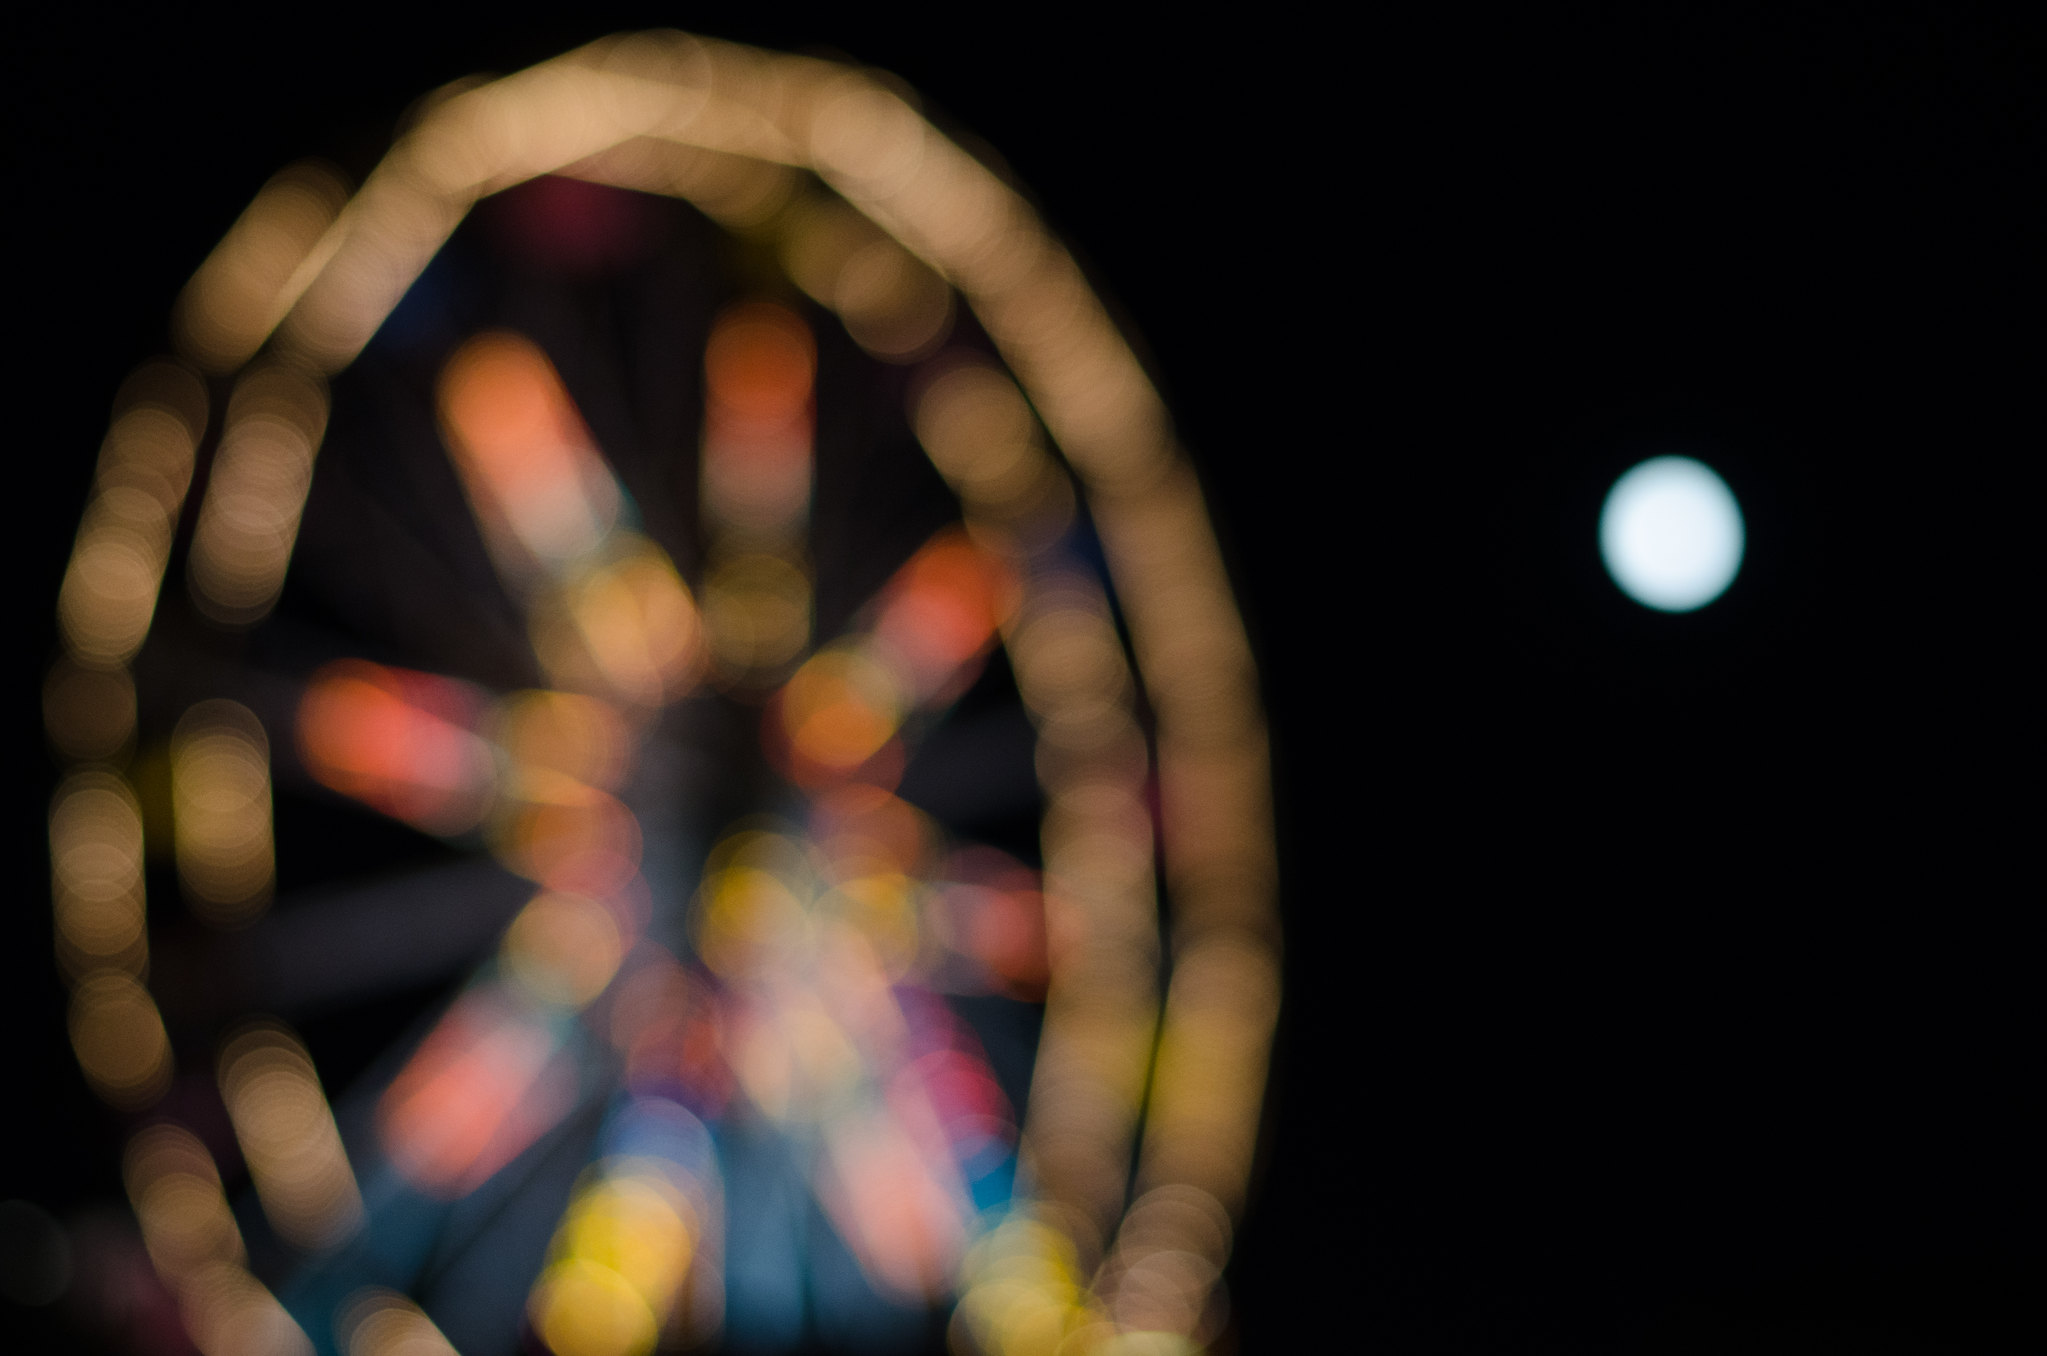 Bokeh Ferris Wheel and Moon at the Farmington Fair on juliettelaura.blogspot.com